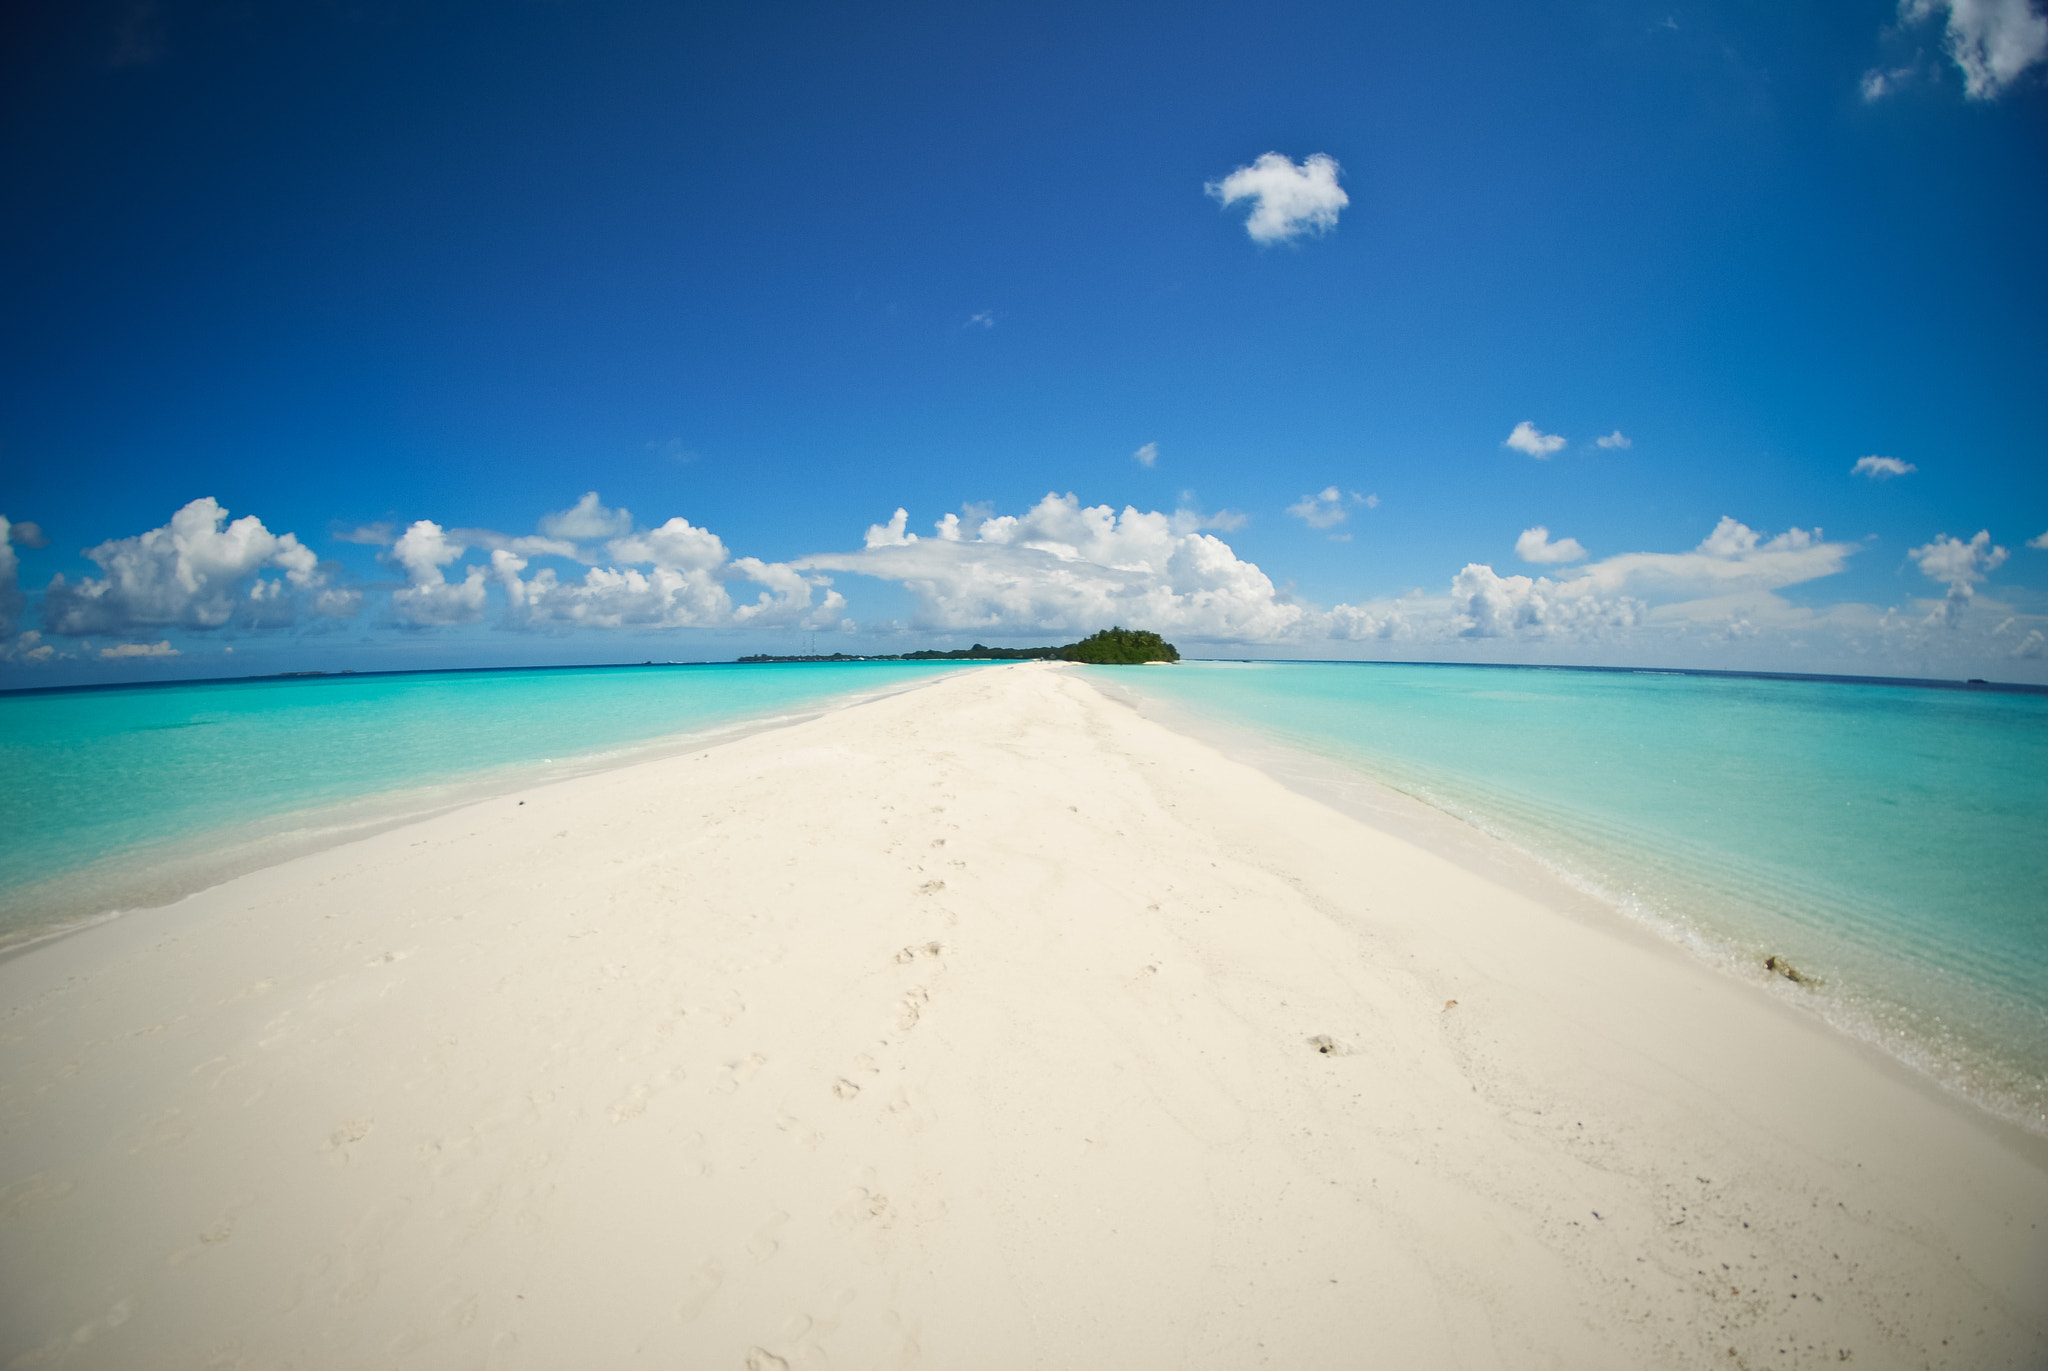 Photograph Lost On An Island - Maldives - by Julien REBOULET on 500px